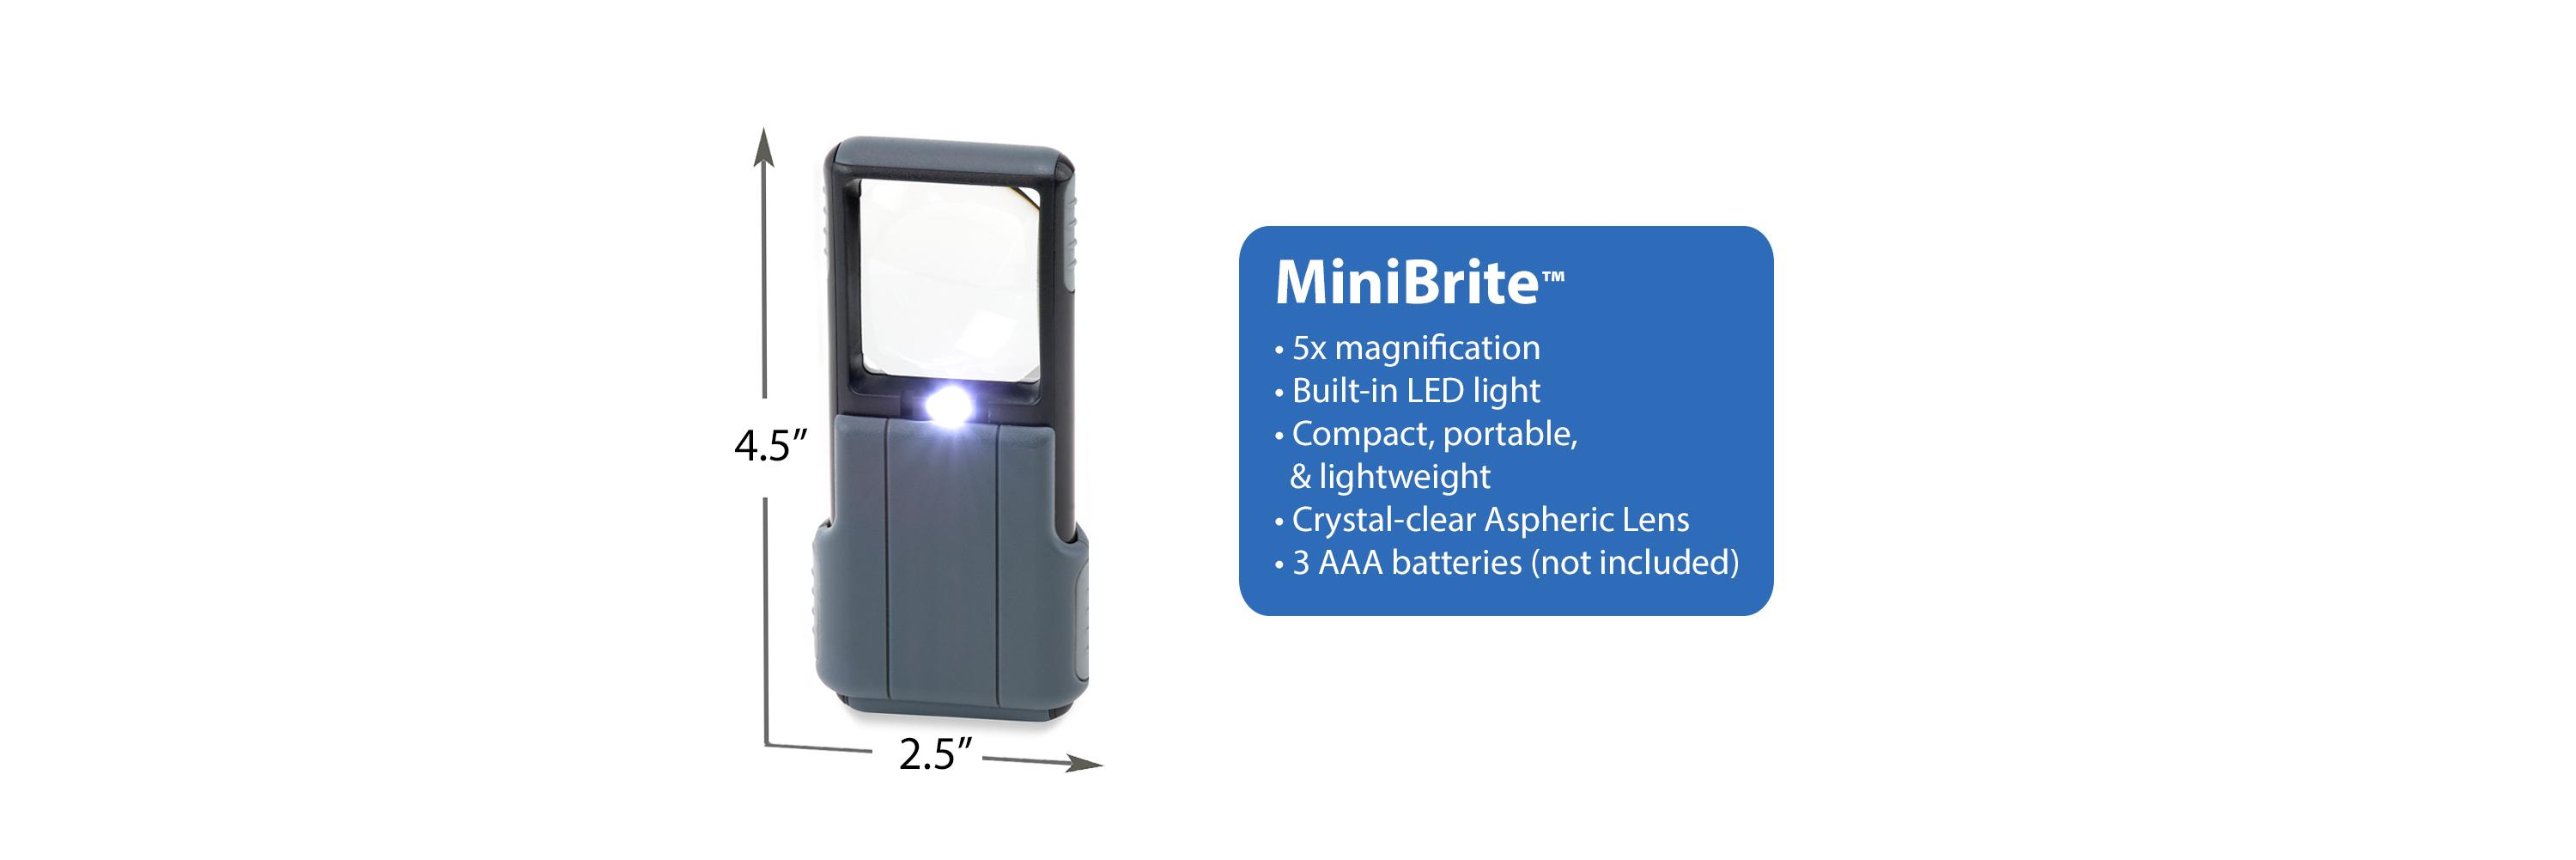 carson 5x minibrite led lighted slide out aspheric